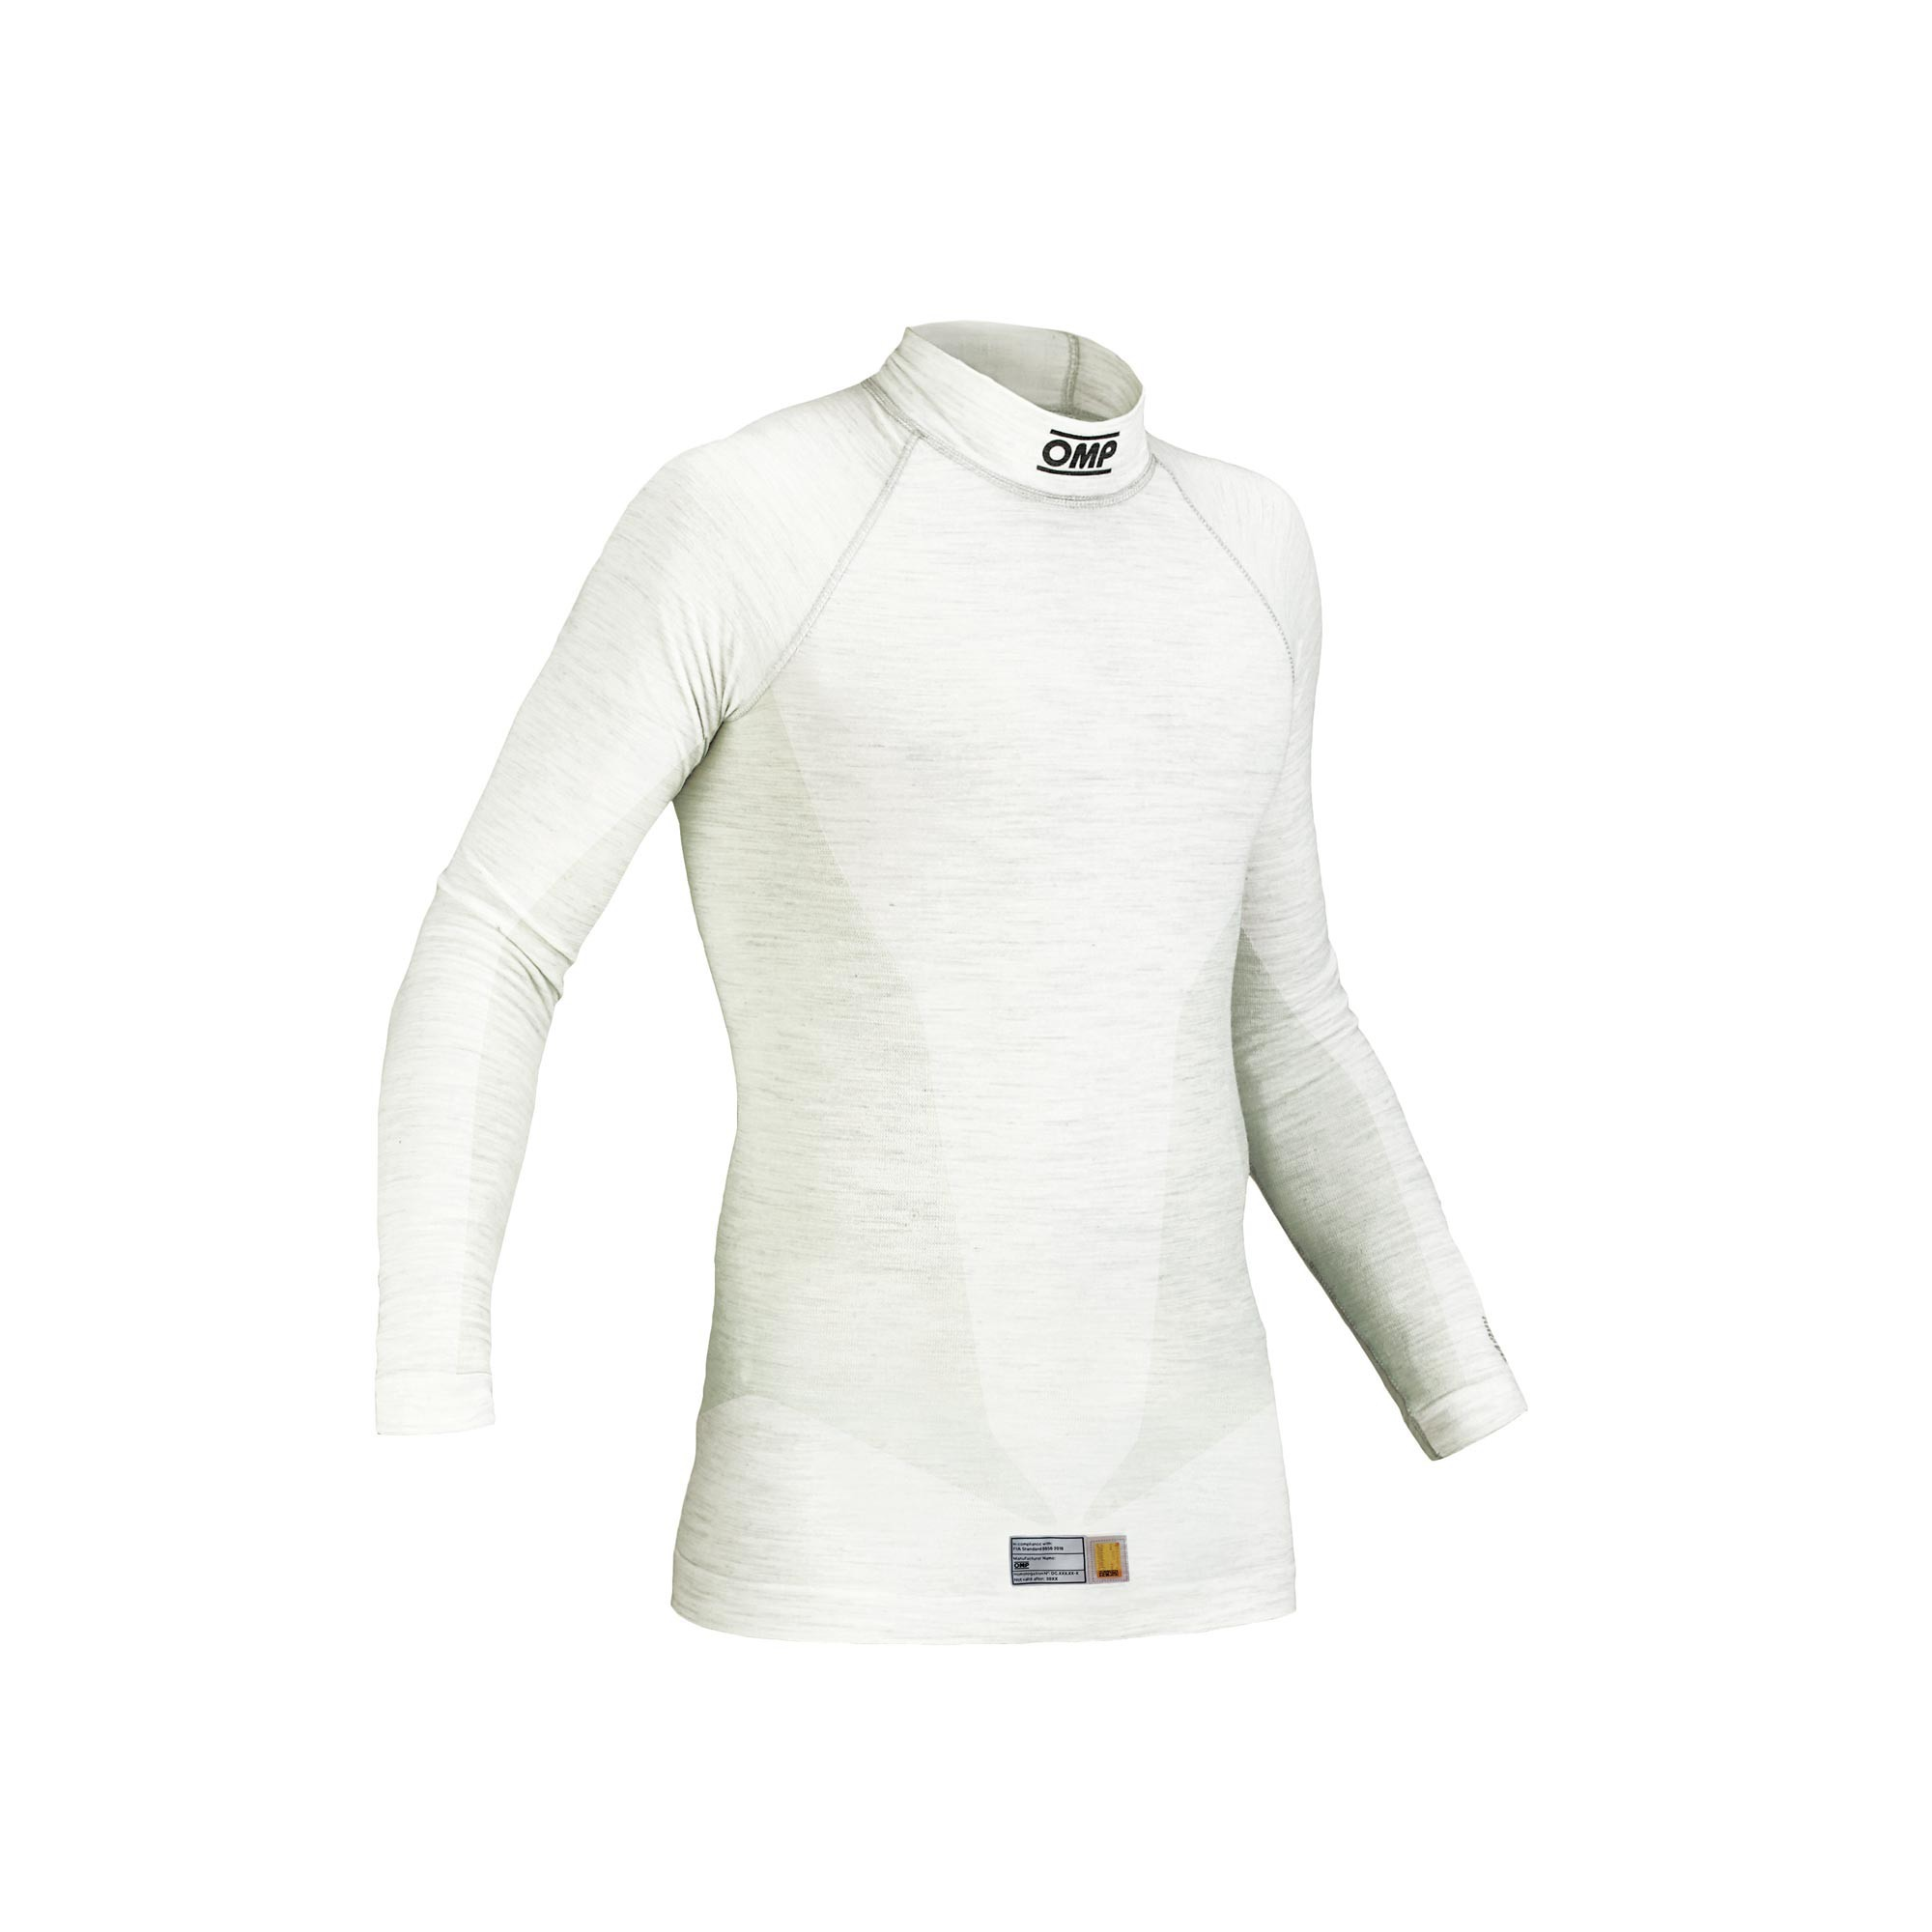 Camisa Nomex ONE Top OMP 2020